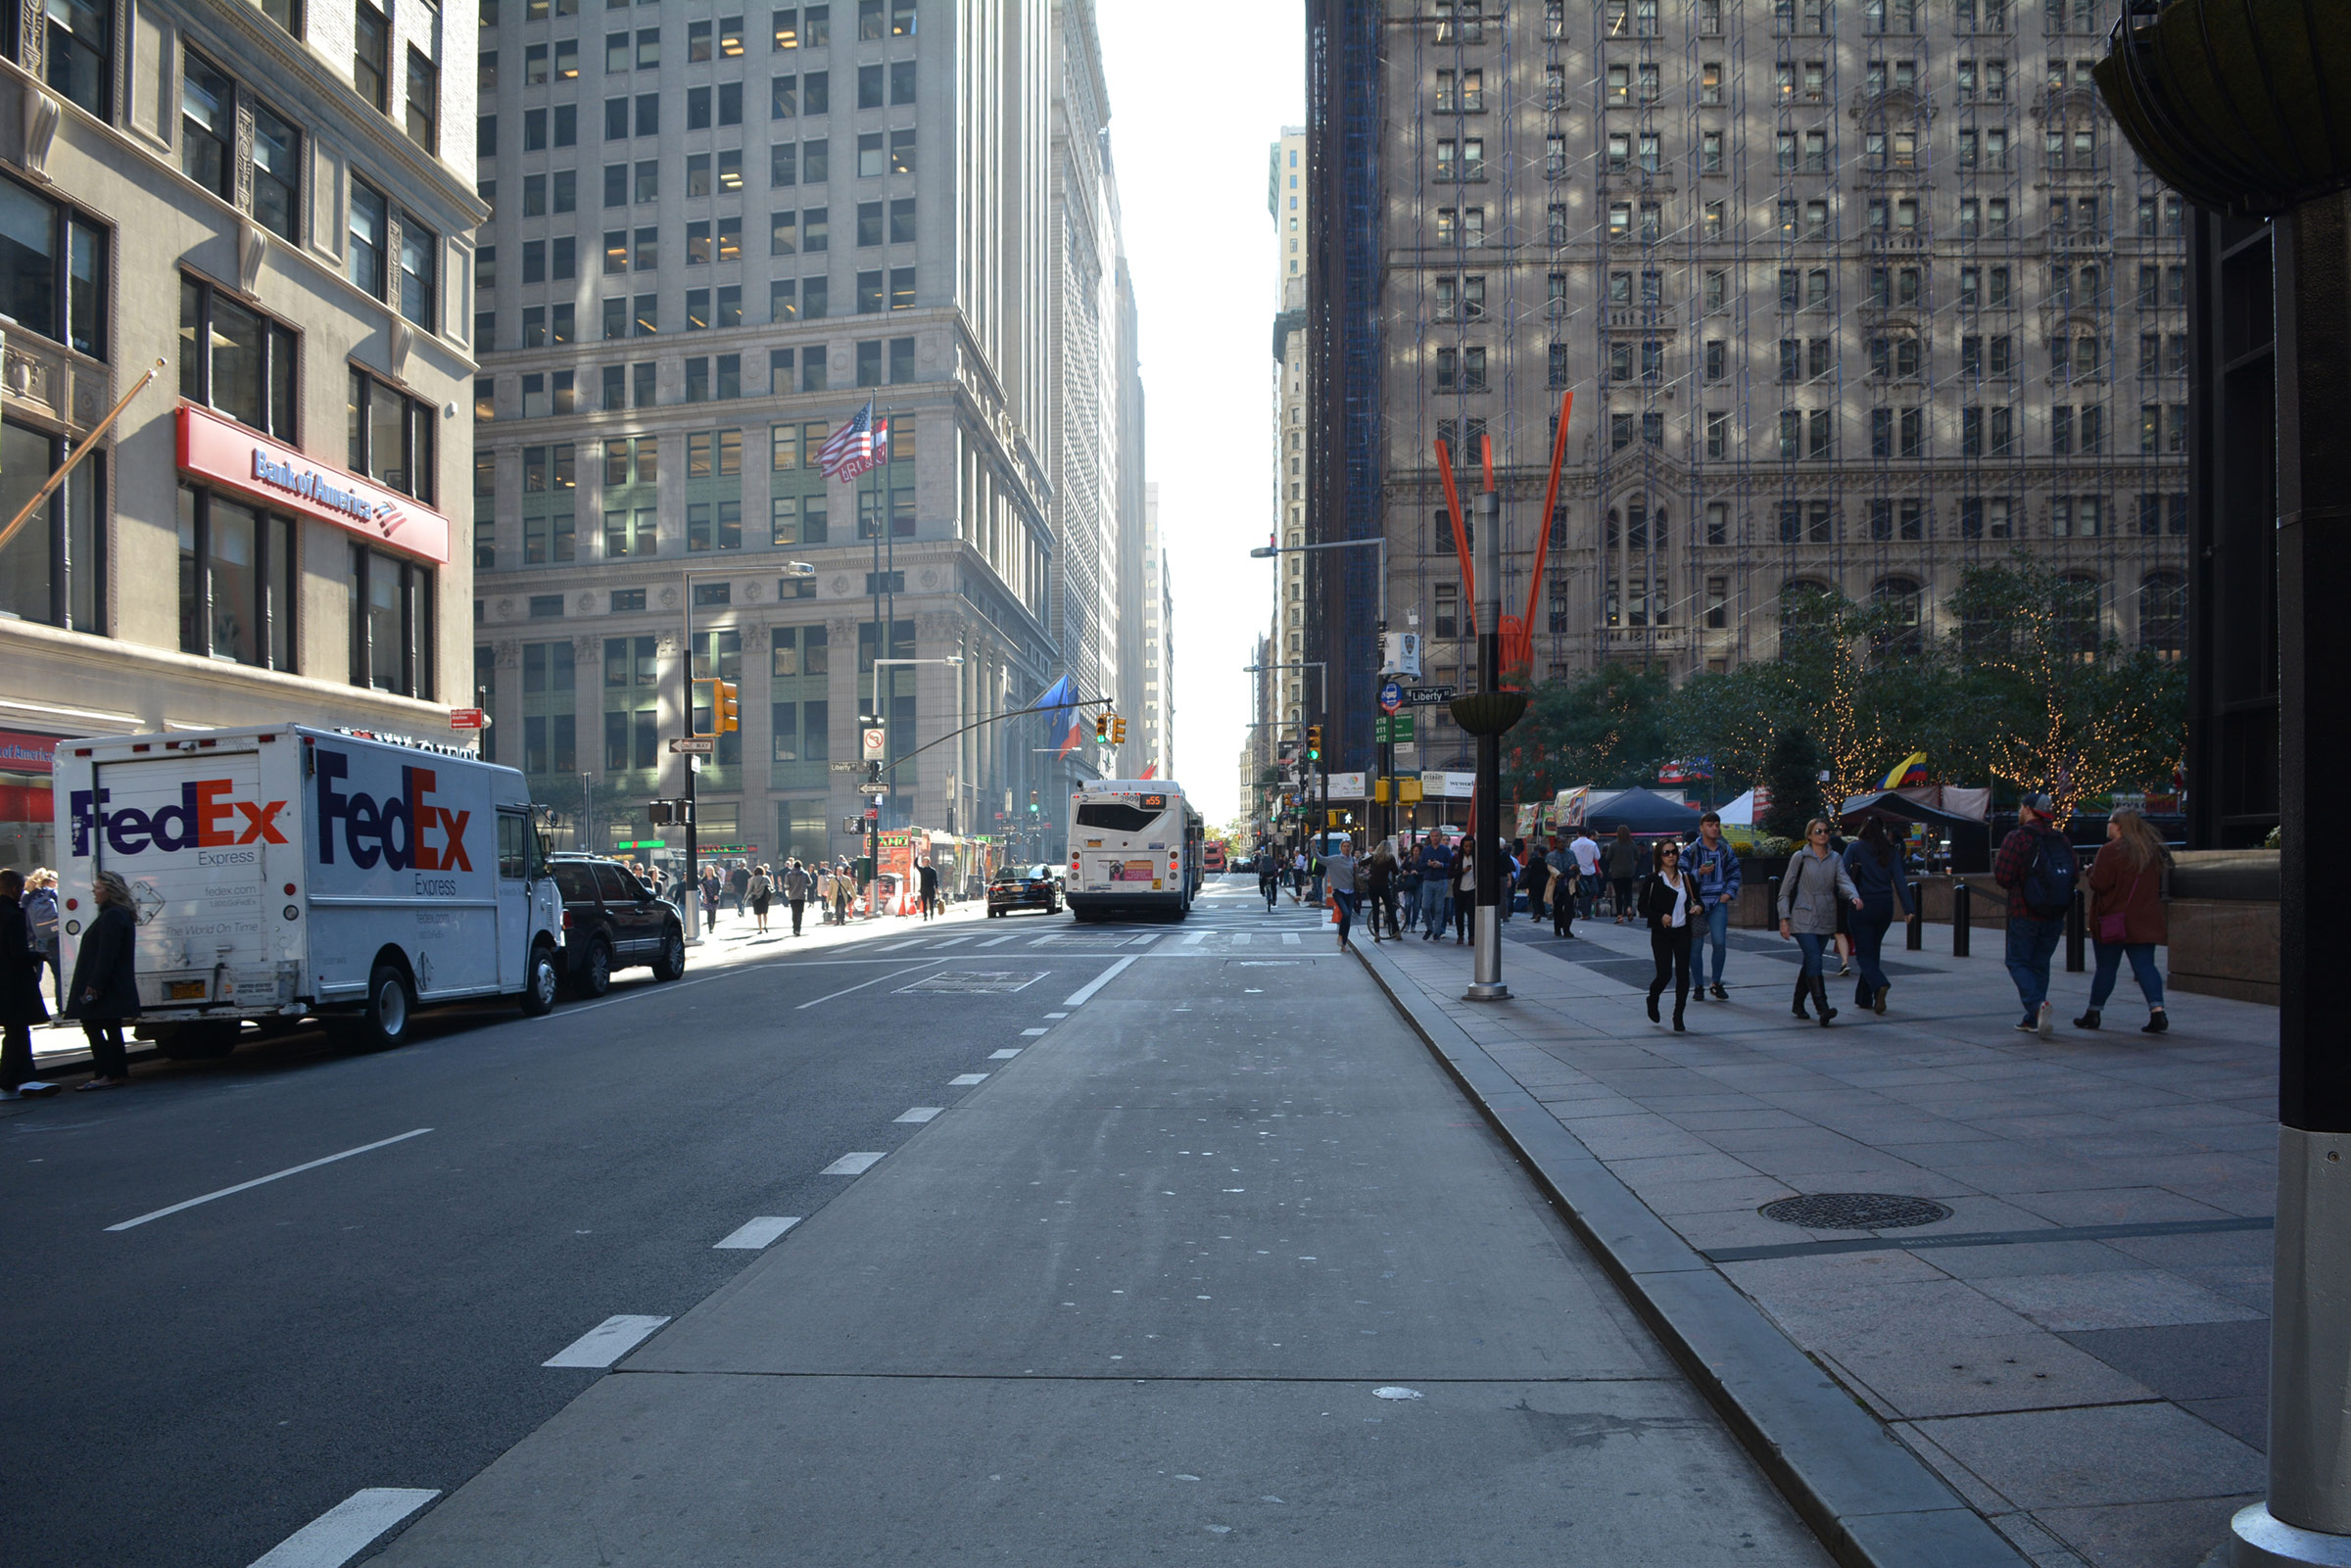 On city streets, prioritize people over cars - The Fourth Regional Plan